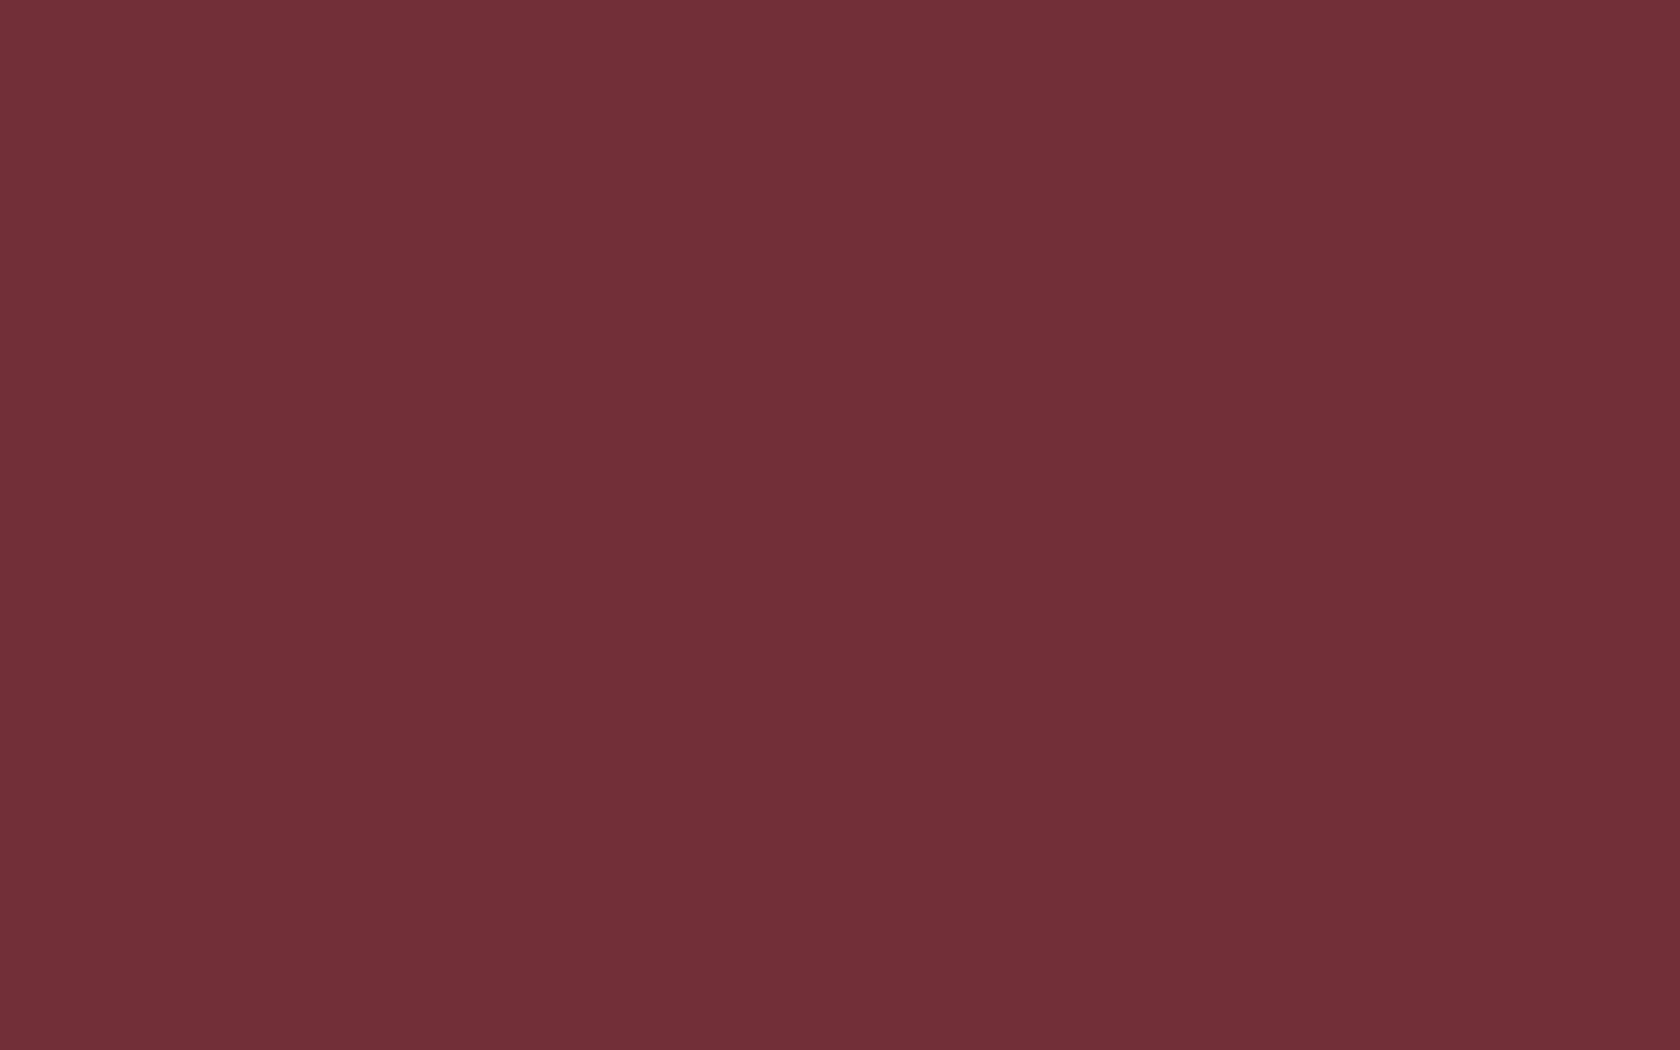 1680x1050 Wine Solid Color Background